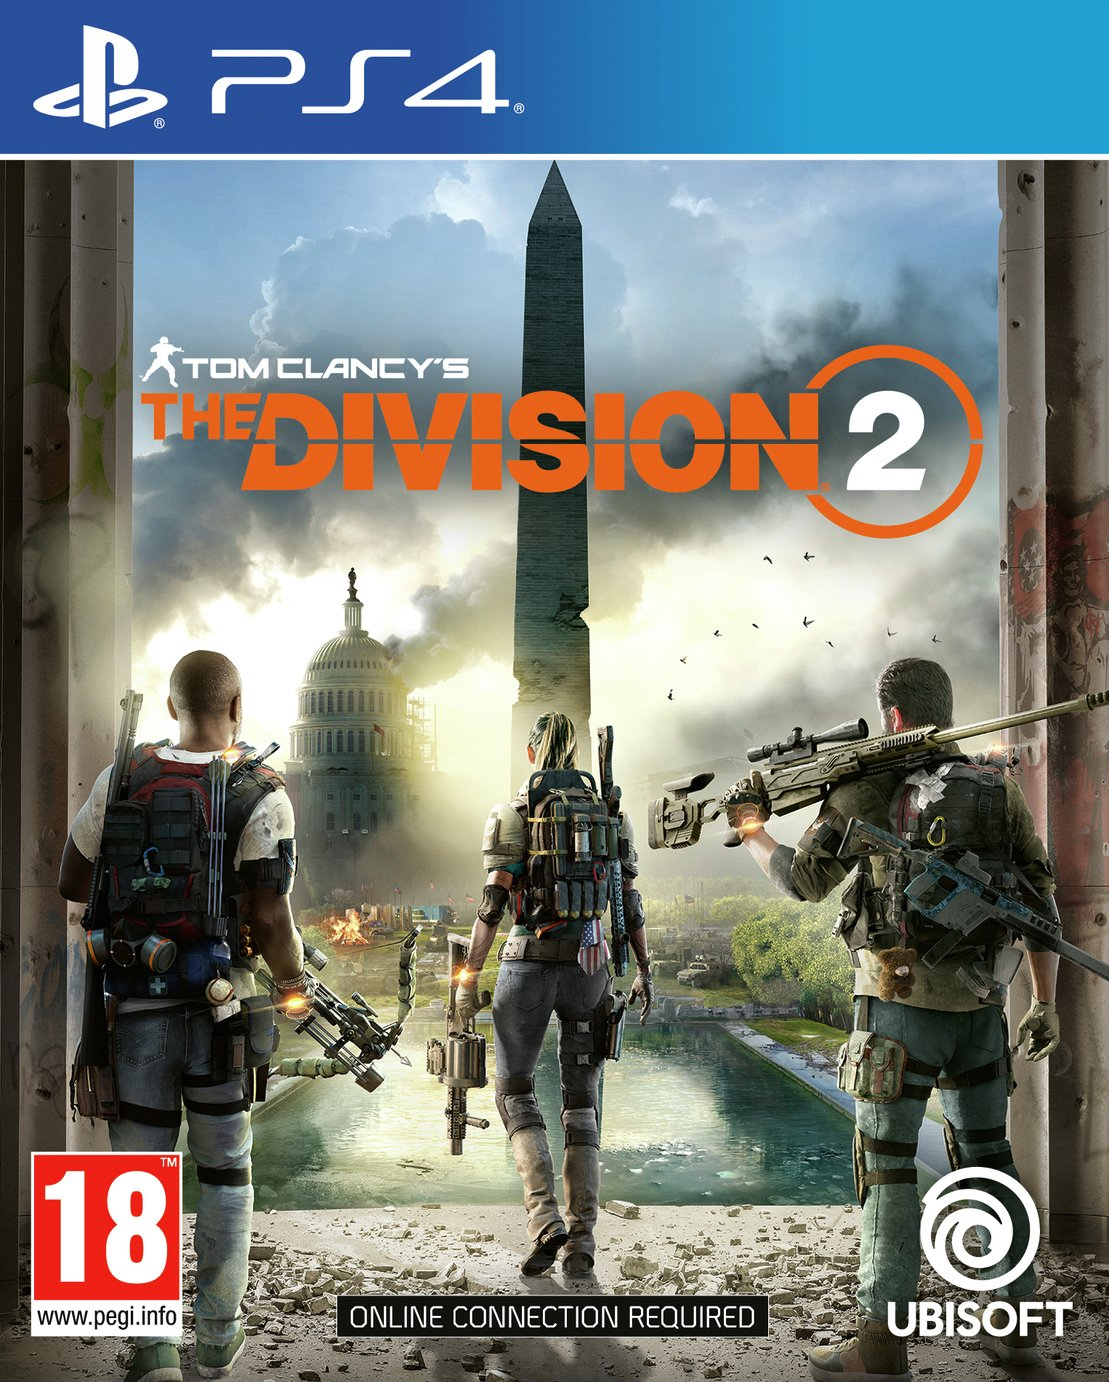 Tom Clancys The Division 2 PS4 Pre-Order Game